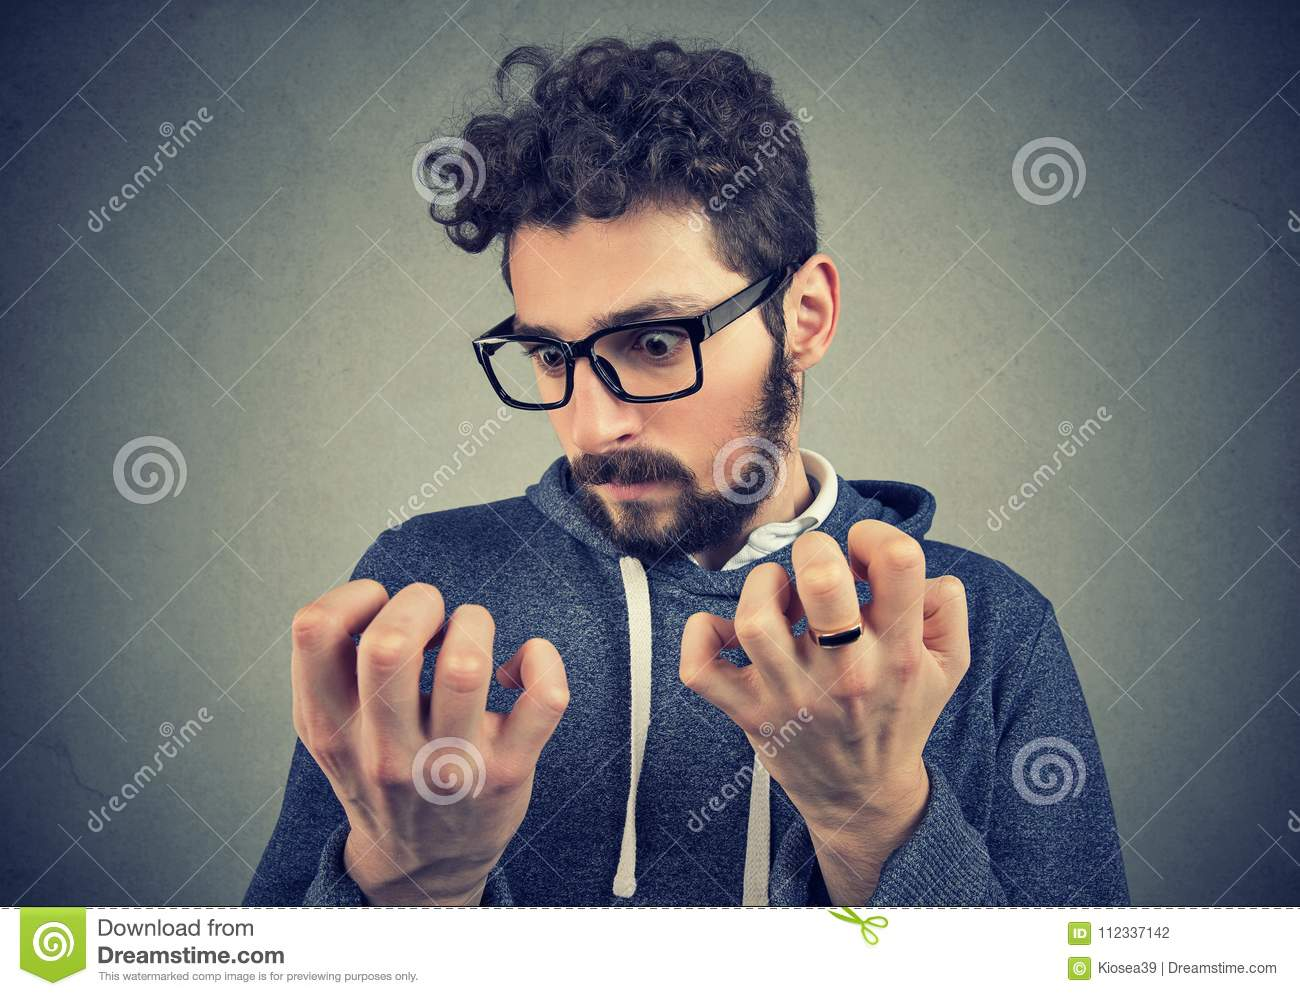 Man with obsessive compulsive disorder exploring cleanliness of hands.